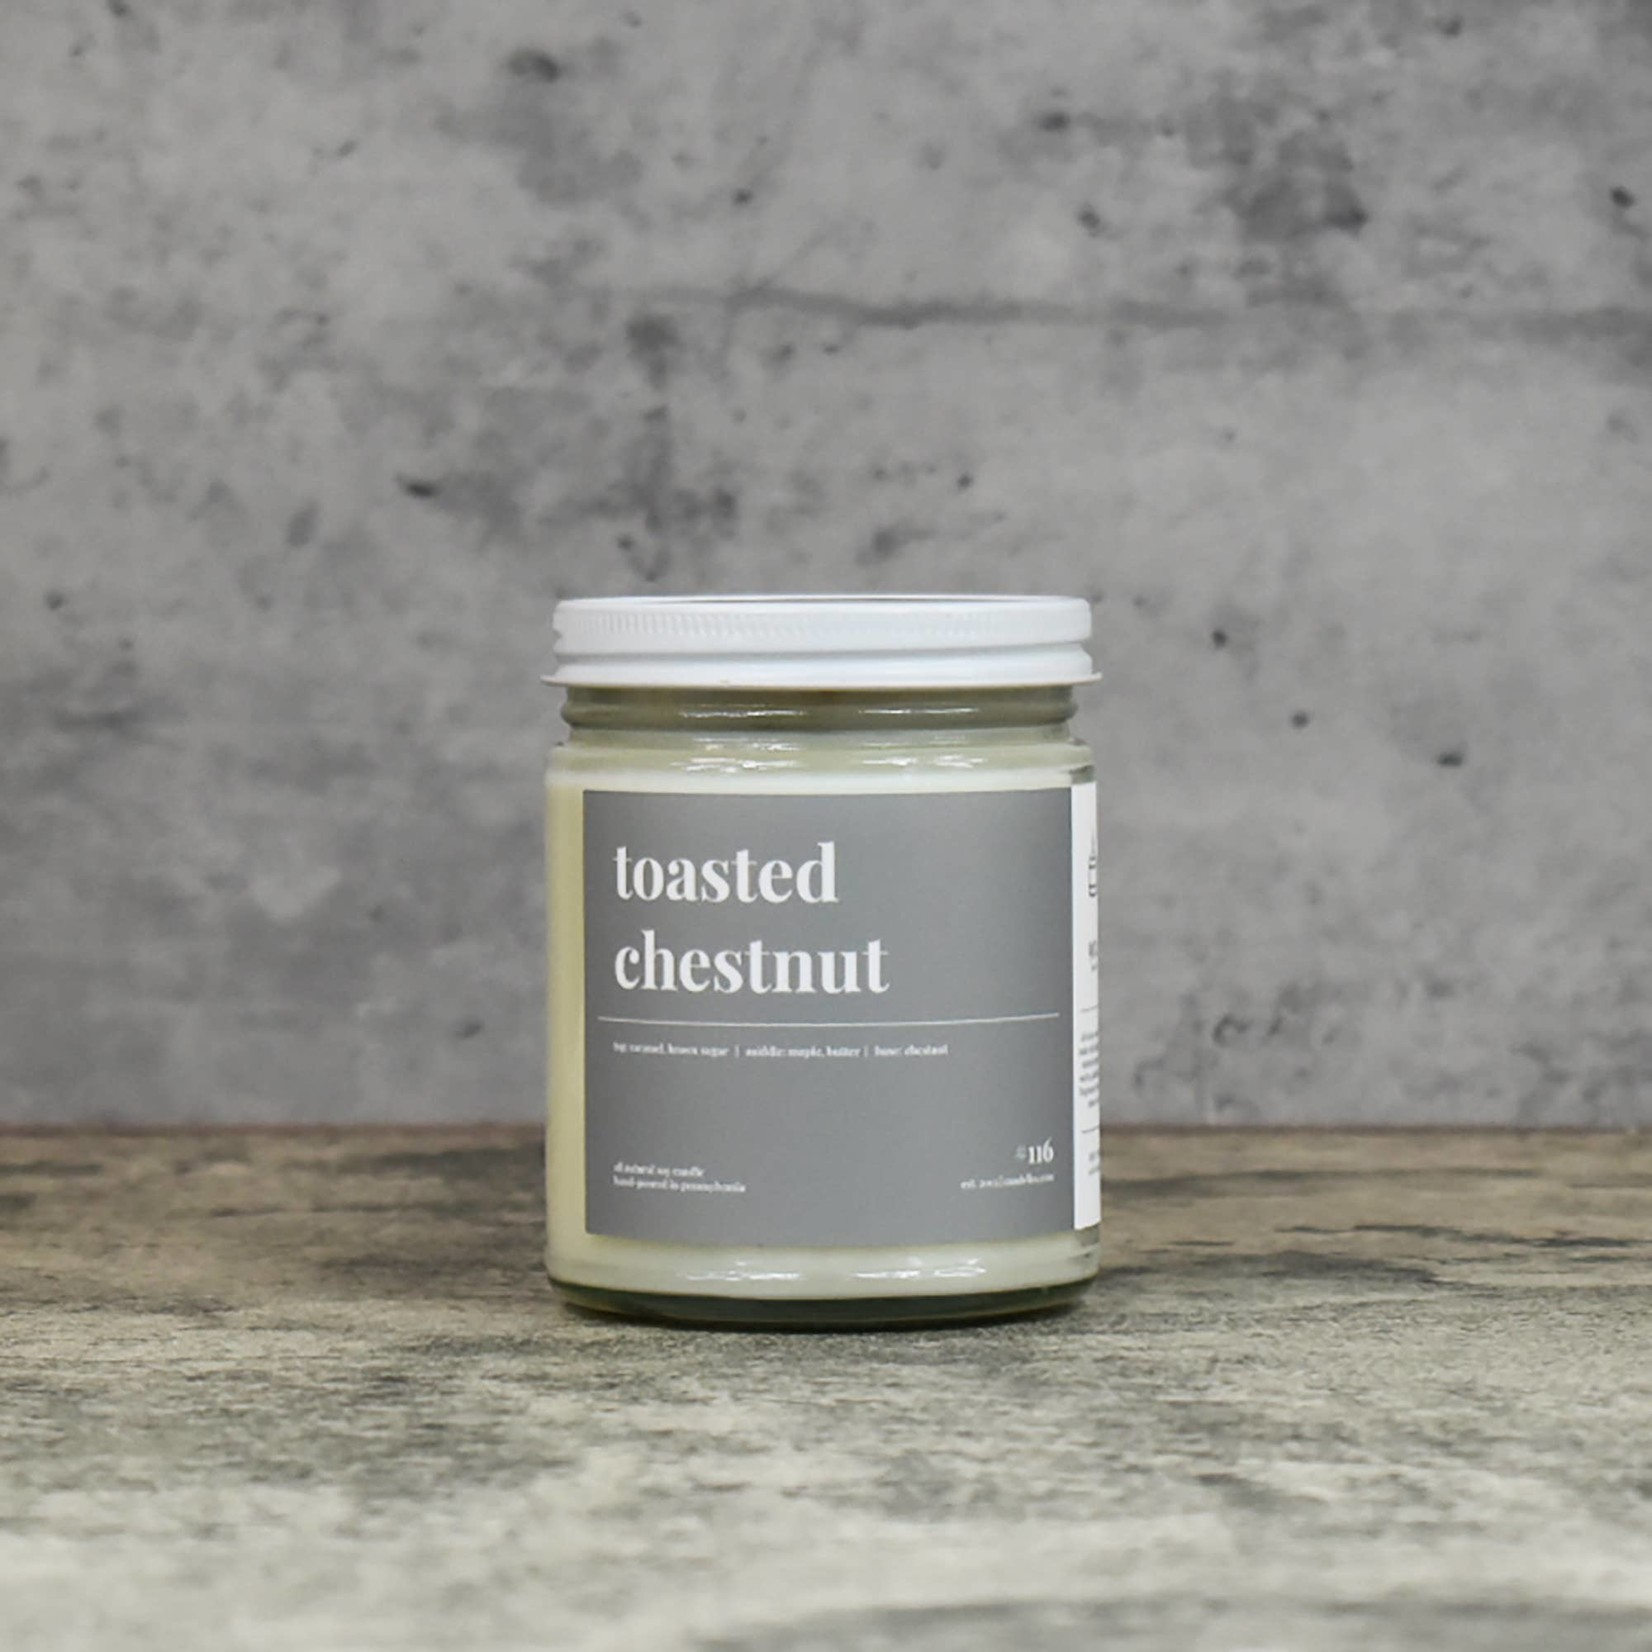 Candelles Soy Candles Toasted Chestnut 9 oz Soy Candle